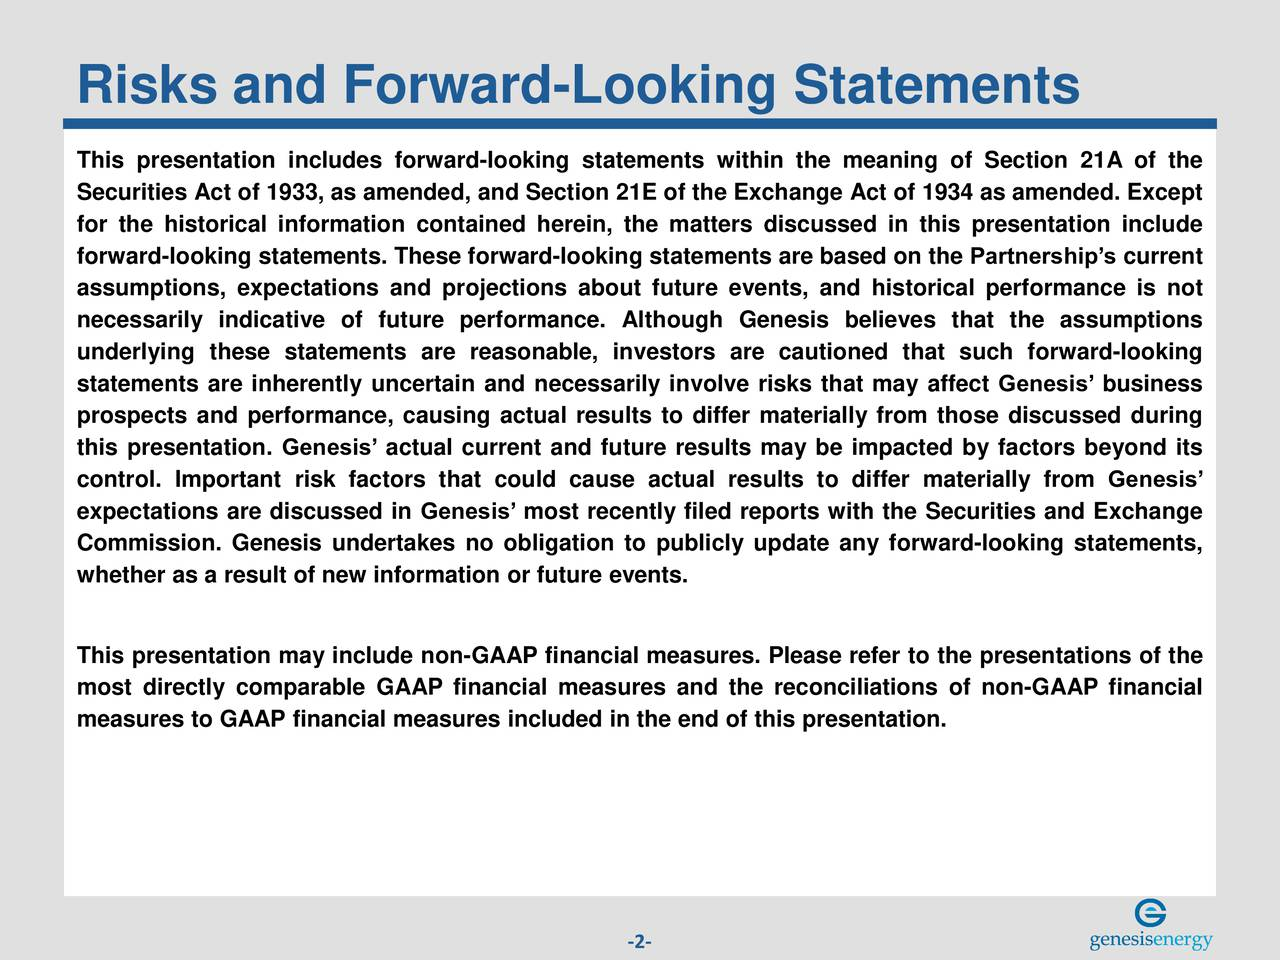 This presentation includes forward-looking statements within the meaning of Section 21A of the Securities Act of 1933, as amended, and Section 21E of the Exchange Act of 1934 as amended. Except for the historical information contained herein, the matters discussed in this presentation include forward-looking statements. These forward-looking statements are based on the Partnerships current assumptions, expectations and projections about future events, and historical performance is not necessarily indicative of future performance. Although Genesis believes that the assumptions underlying these statements are reasonable, investors are cautioned that such forward-looking statements are inherently uncertain and necessarily involve risks that may affect Genesis business prospects and performance, causing actual results to differ materially from those discussed during this presentation. Genesis actual current and future results may be impacted by factors beyond its control. Important risk factors that could cause actual results to differ materially from Genesis expectations are discussed in Genesis most recently filed reports with the Securities and Exchange Commission. Genesis undertakes no obligation to publicly update any forward-looking statements, whether as a result of new information or future events. This presentation may include non-GAAP financial measures. Please refer to the presentations of the most directly comparable GAAP financial measures and the reconciliations of non-GAAP financial measures to GAAP financial measures included in the end of this presentation. -2-